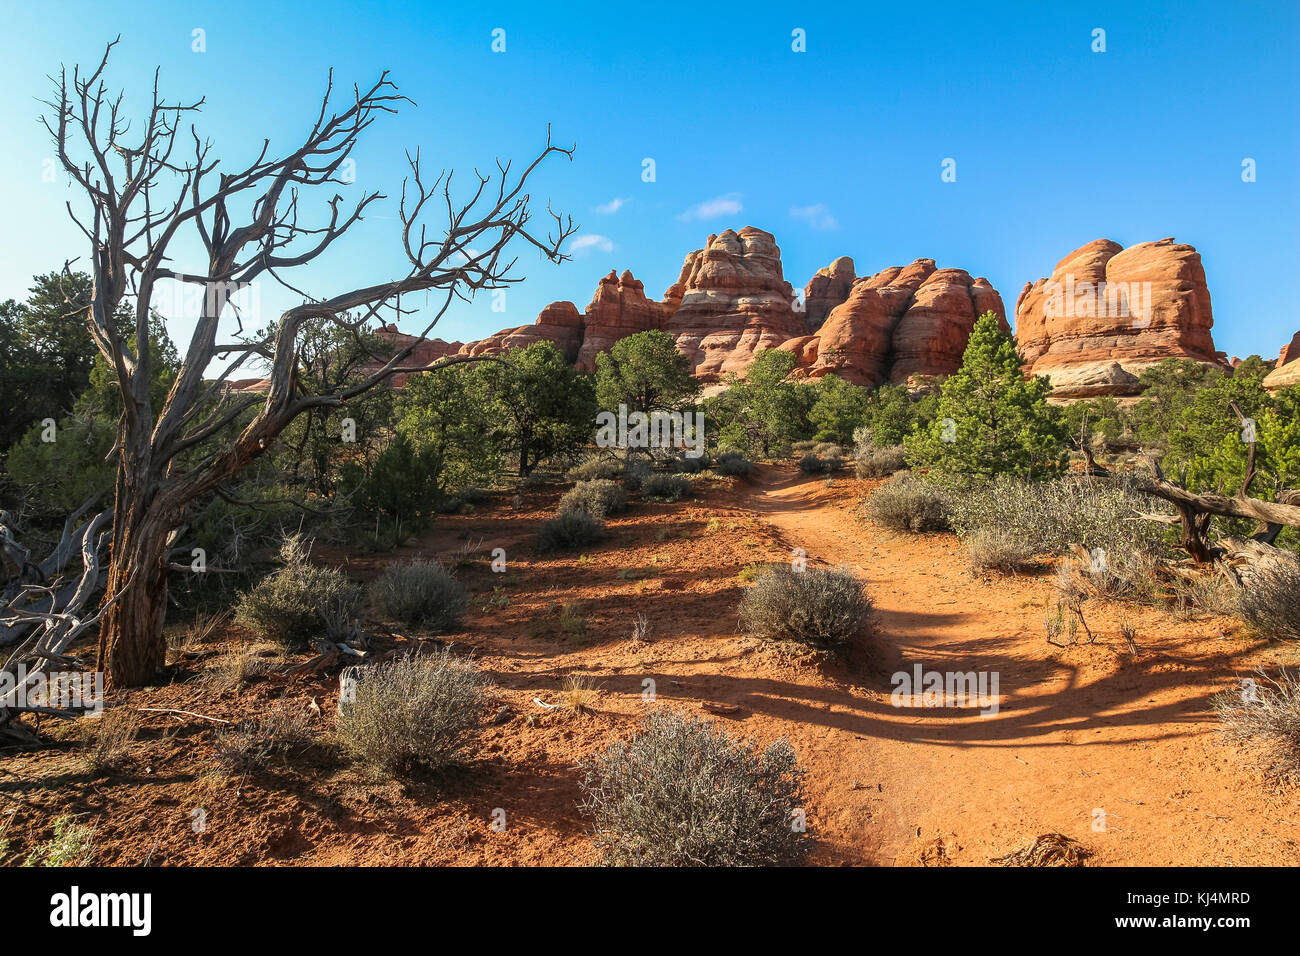 Beautiful red rocks landscape in Chesler park, needles district - Stock Image